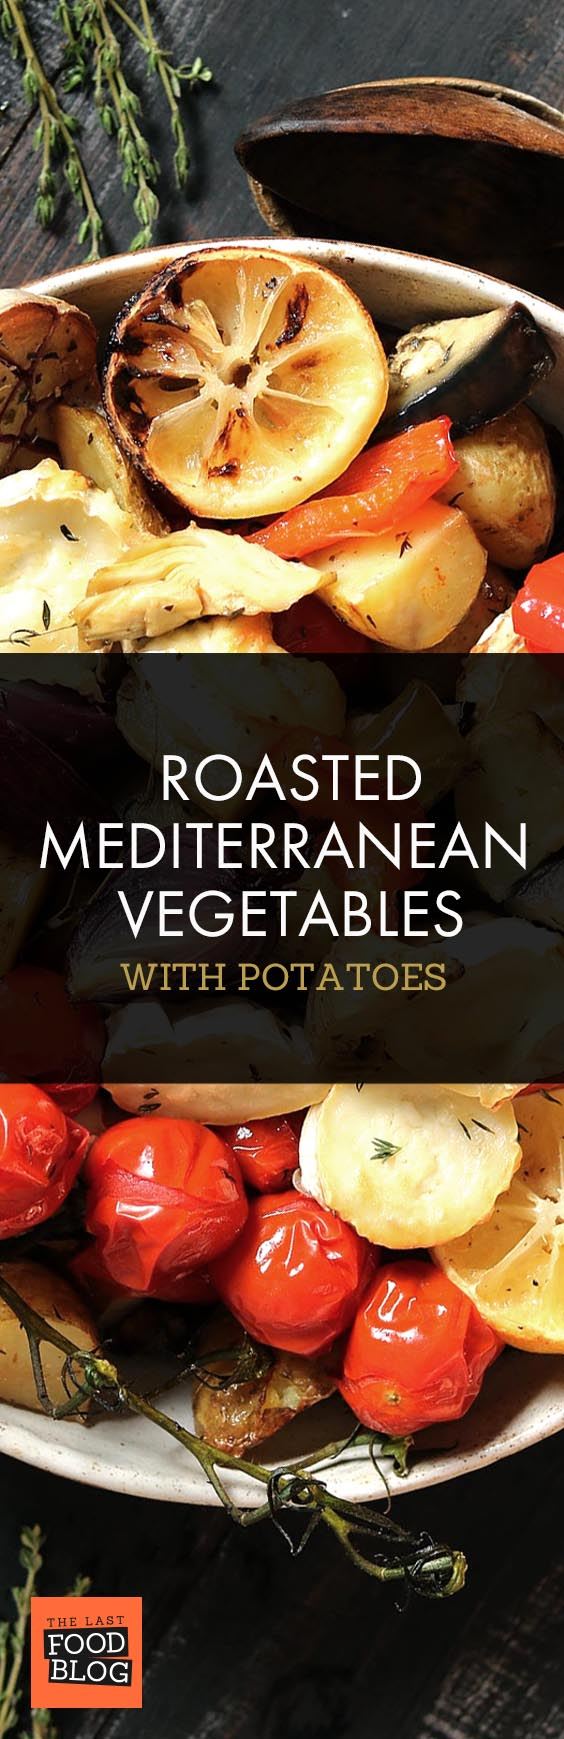 Roasted Mediterranean Vegetables with Potatoes - thelastfoodblog.com